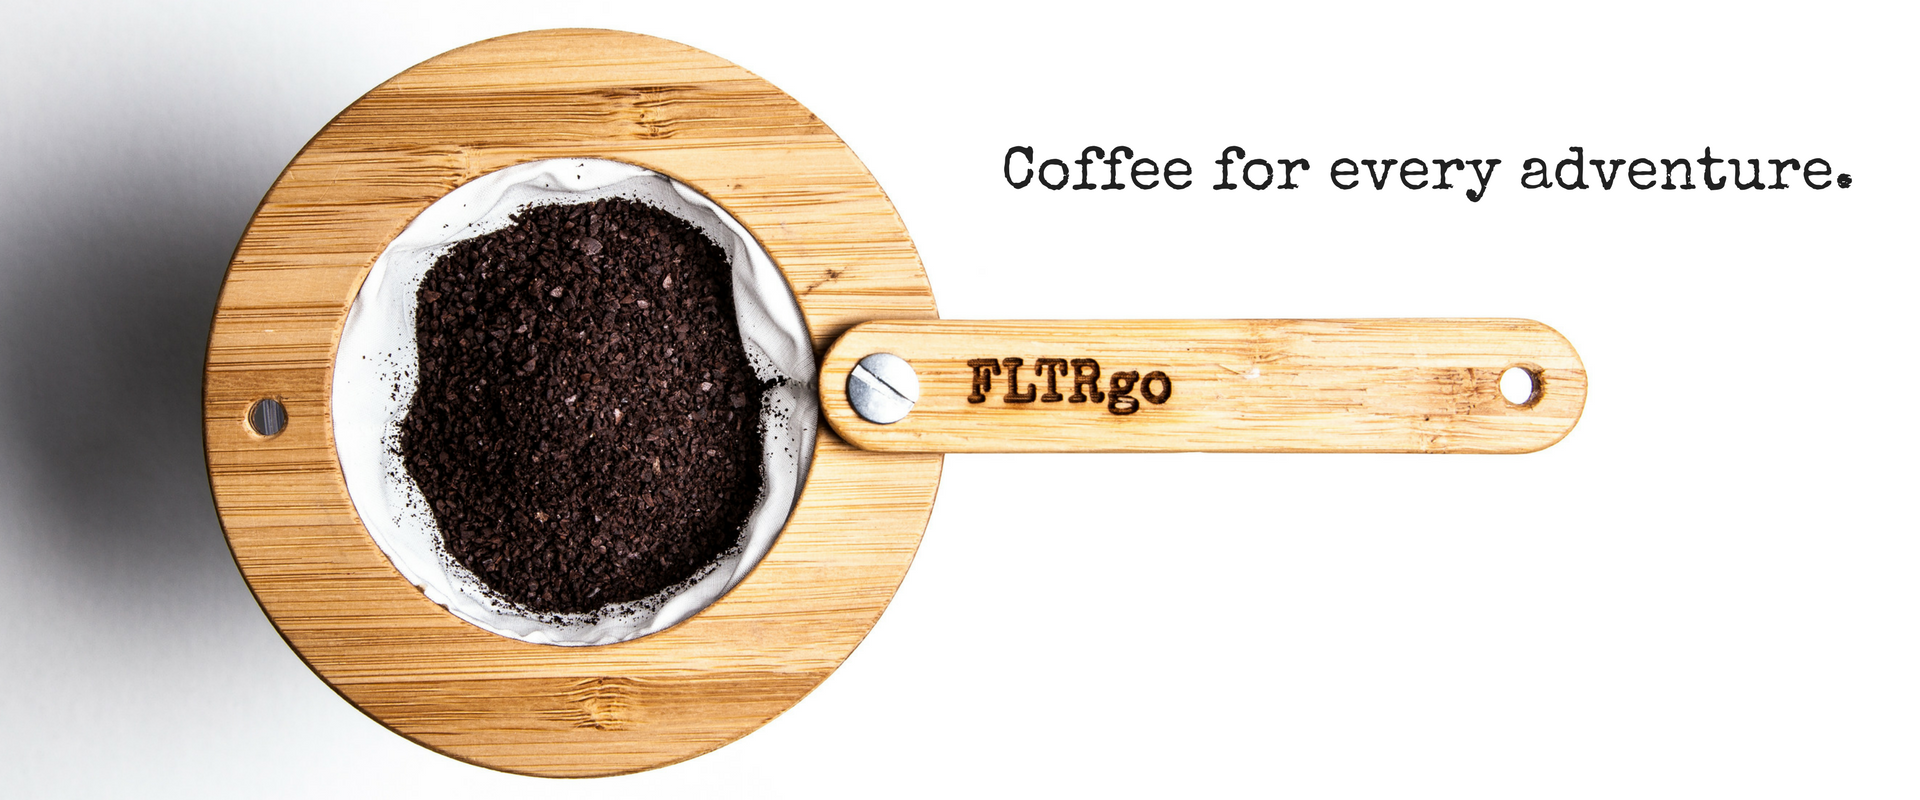 FLTRgo Travel Coffee Filter. Coffee For Every Adventure.